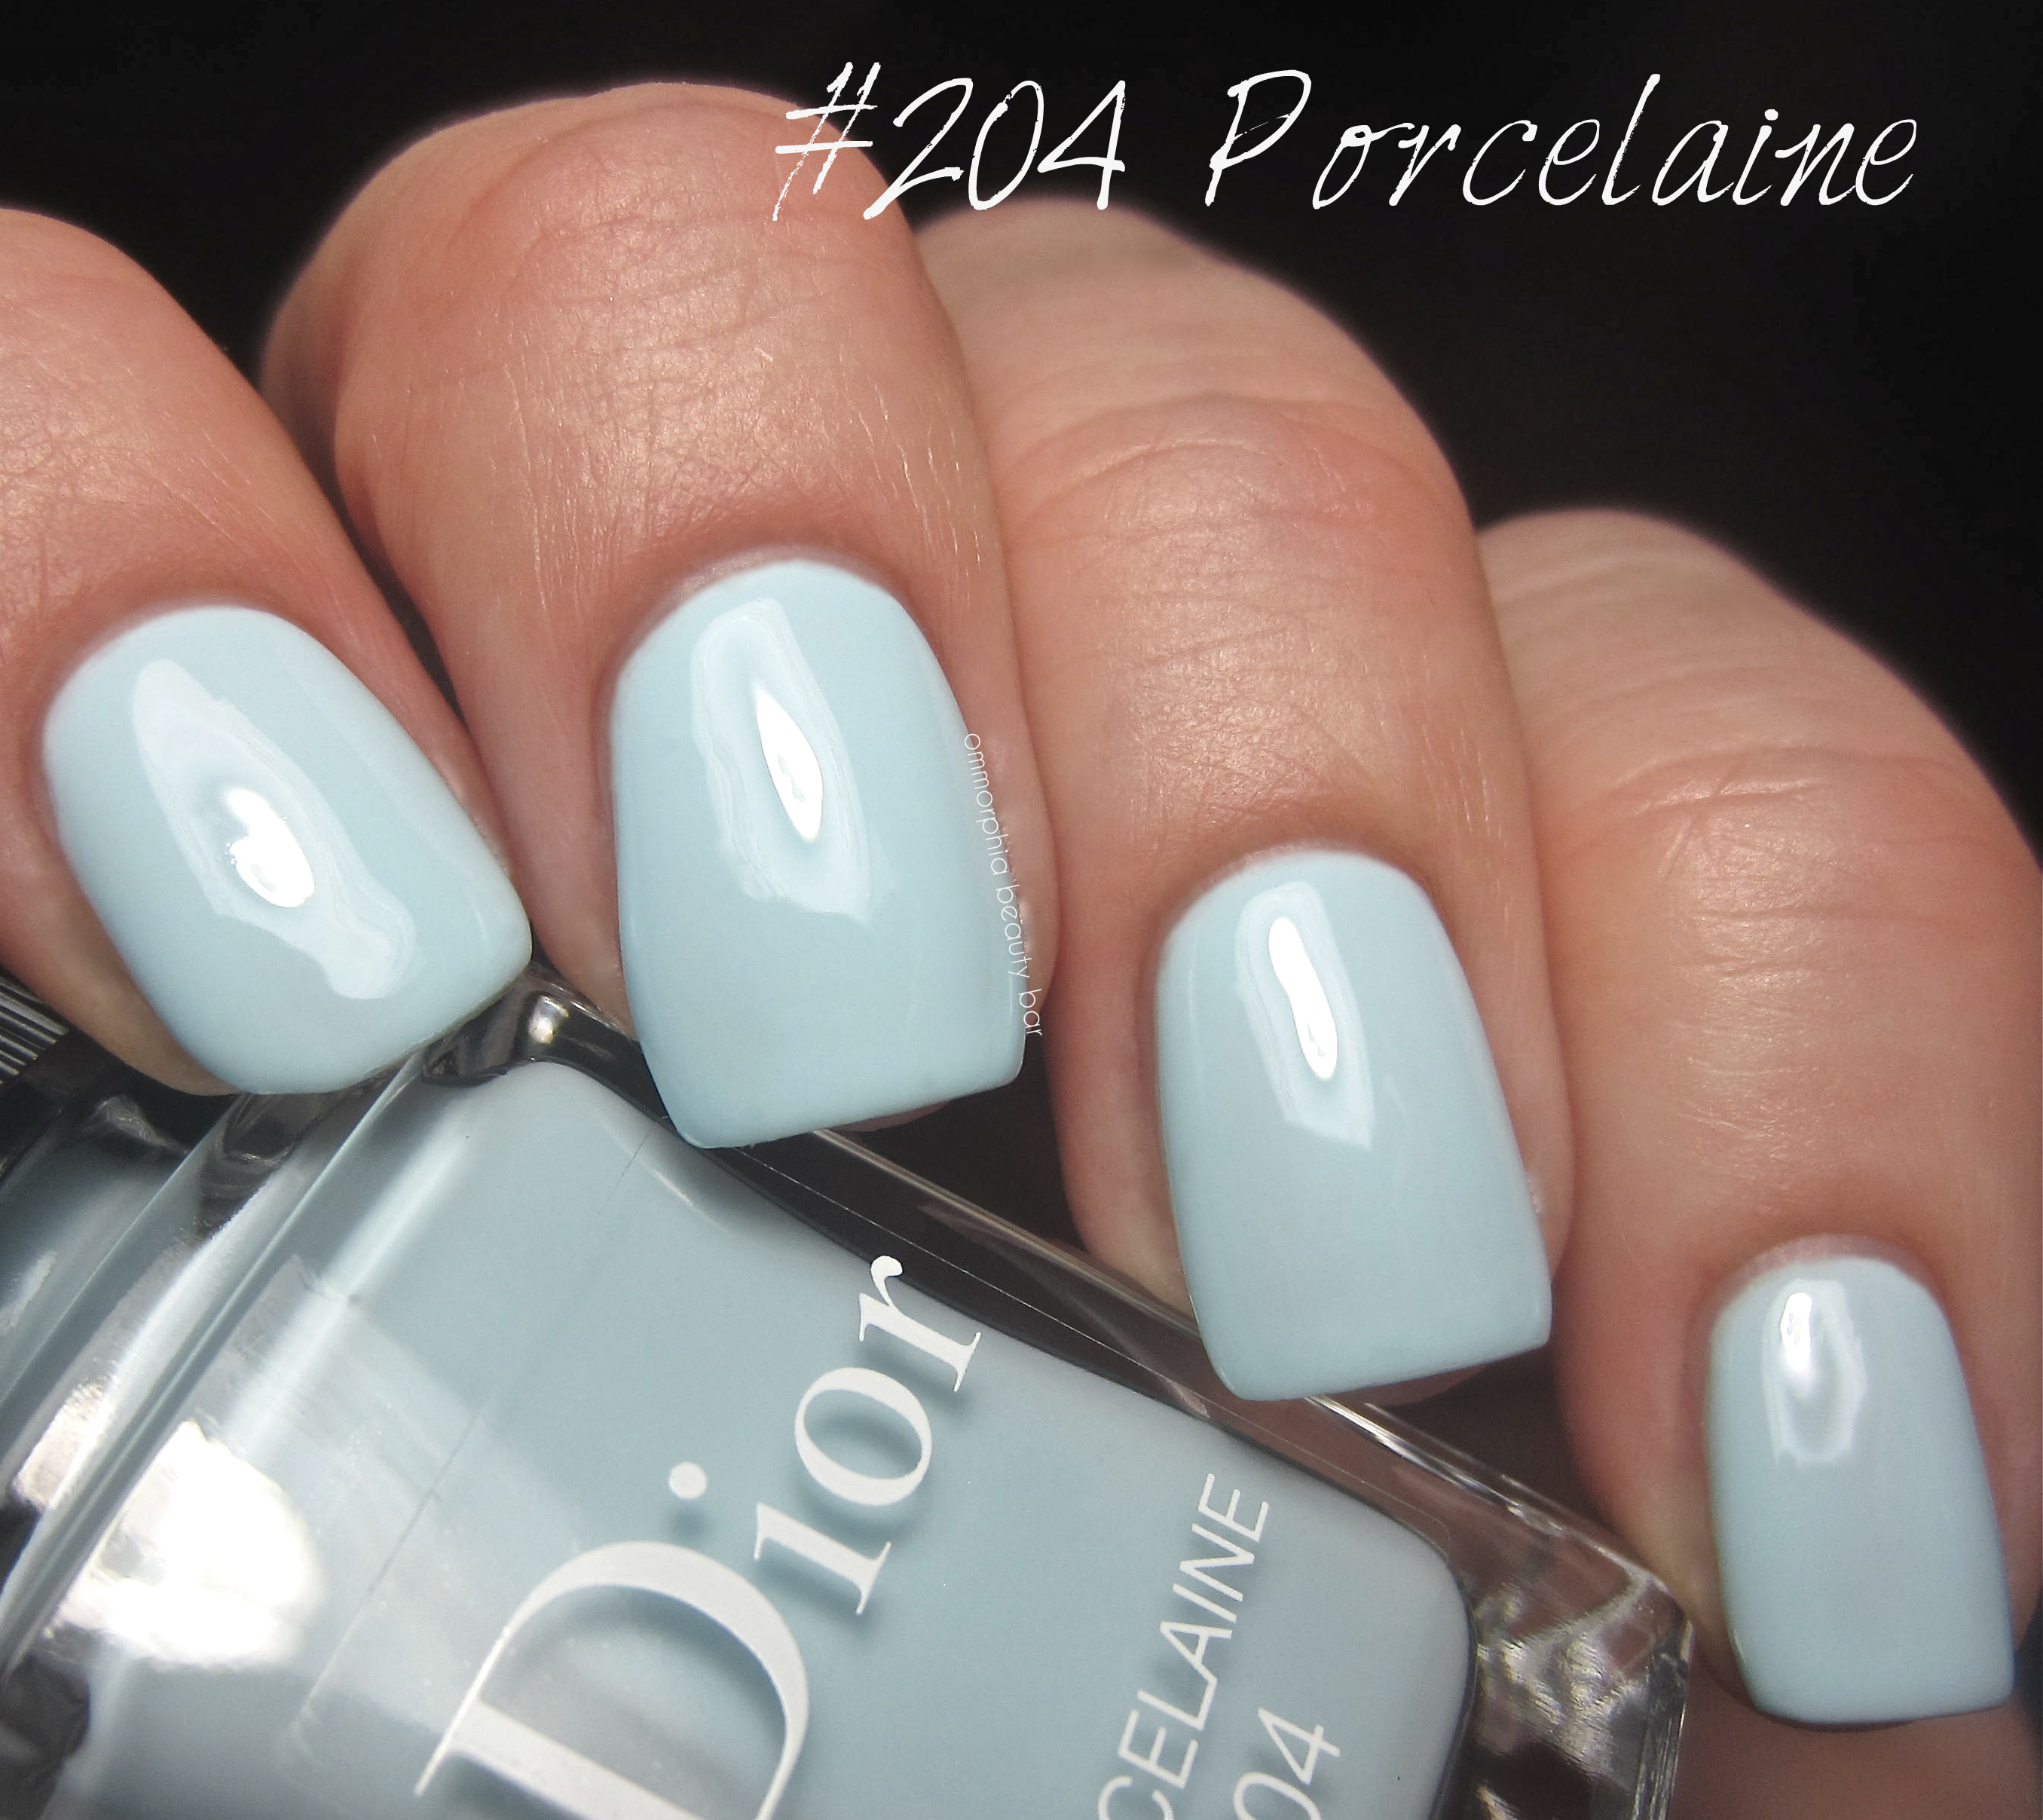 Dior Porcelaine swatch